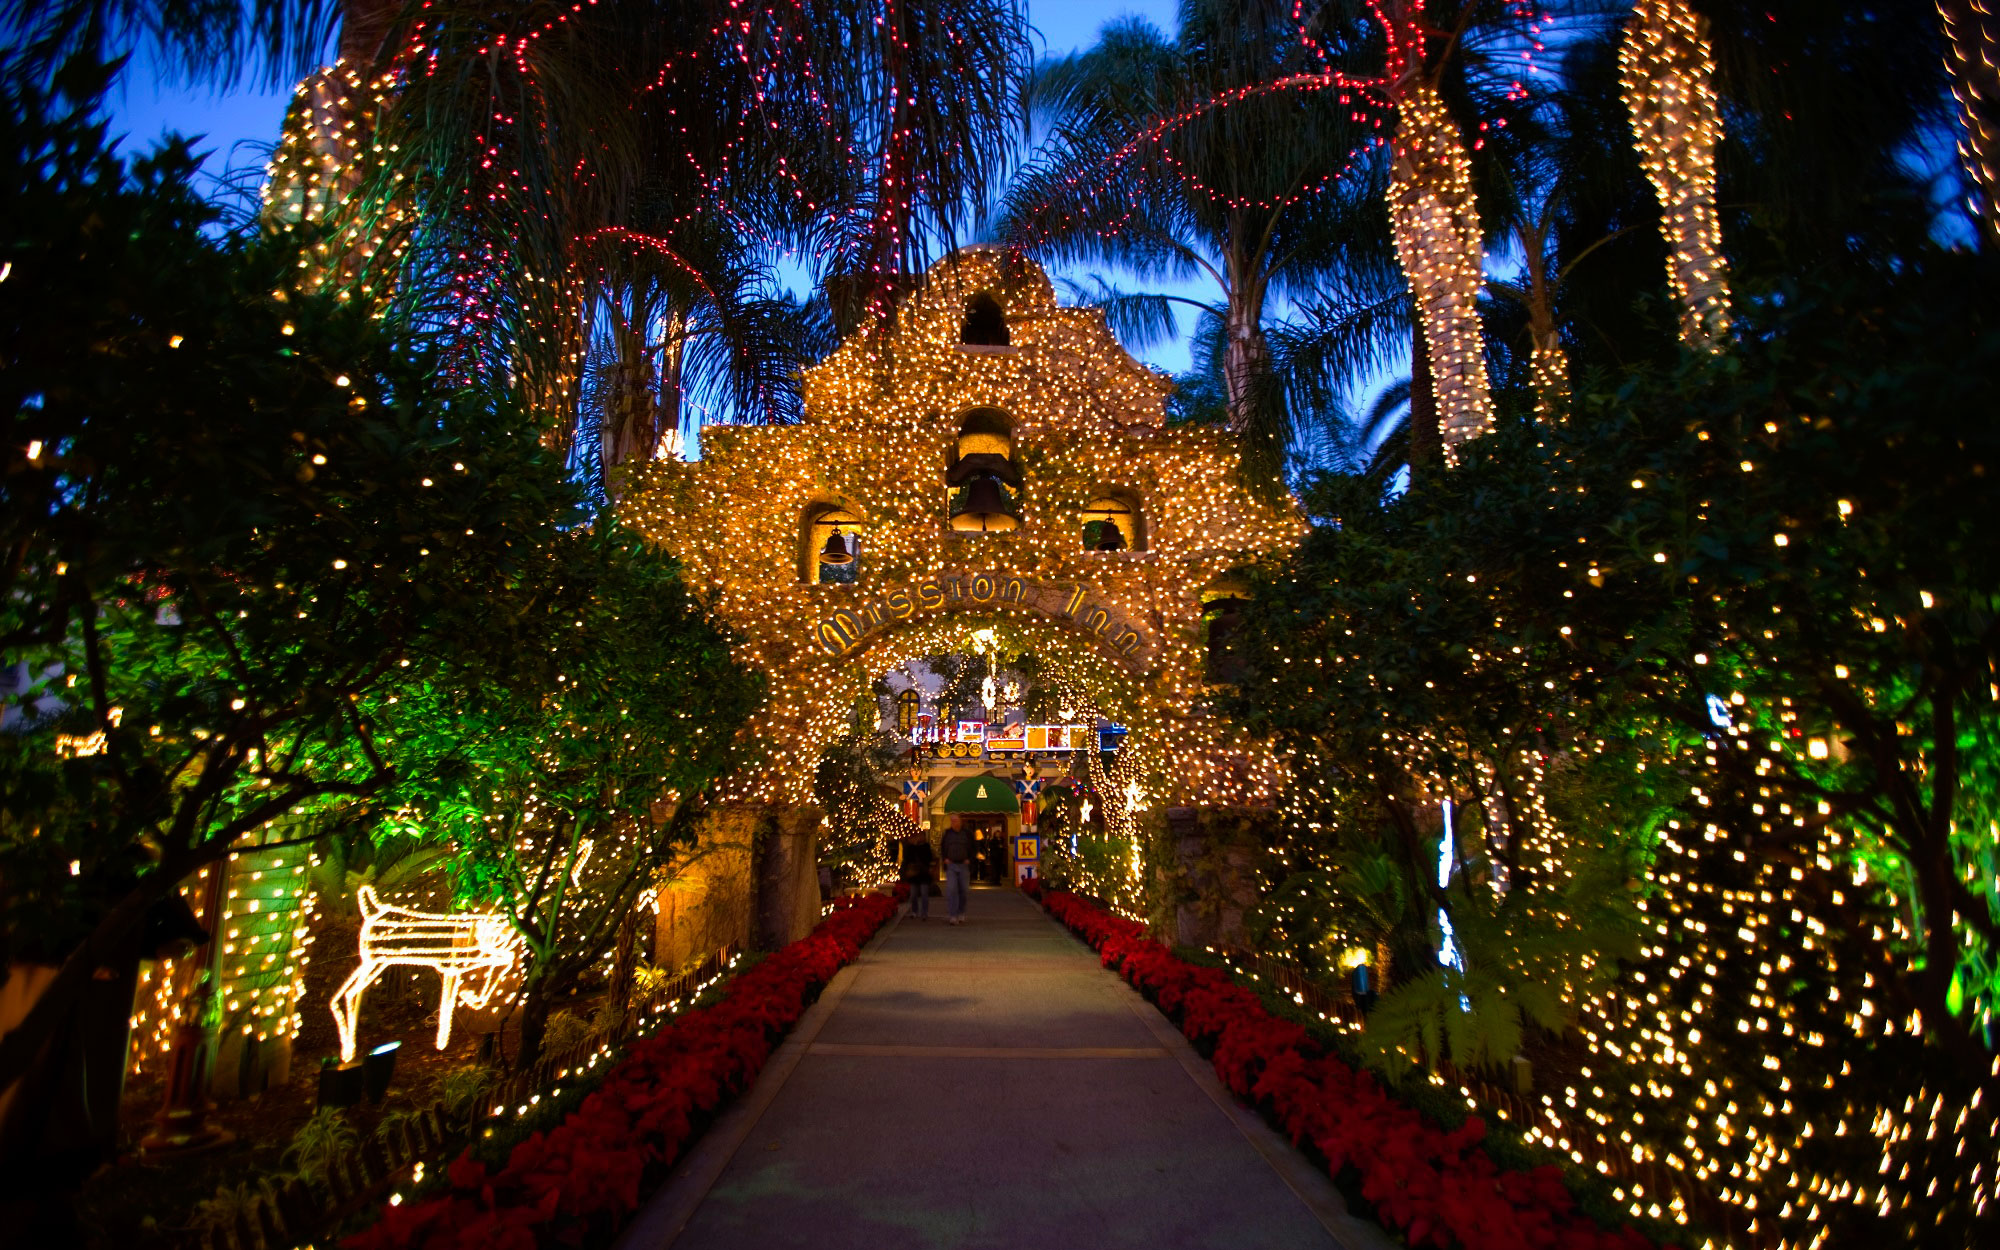 The Mission Inn Hotel & Spa, Riverside, CA